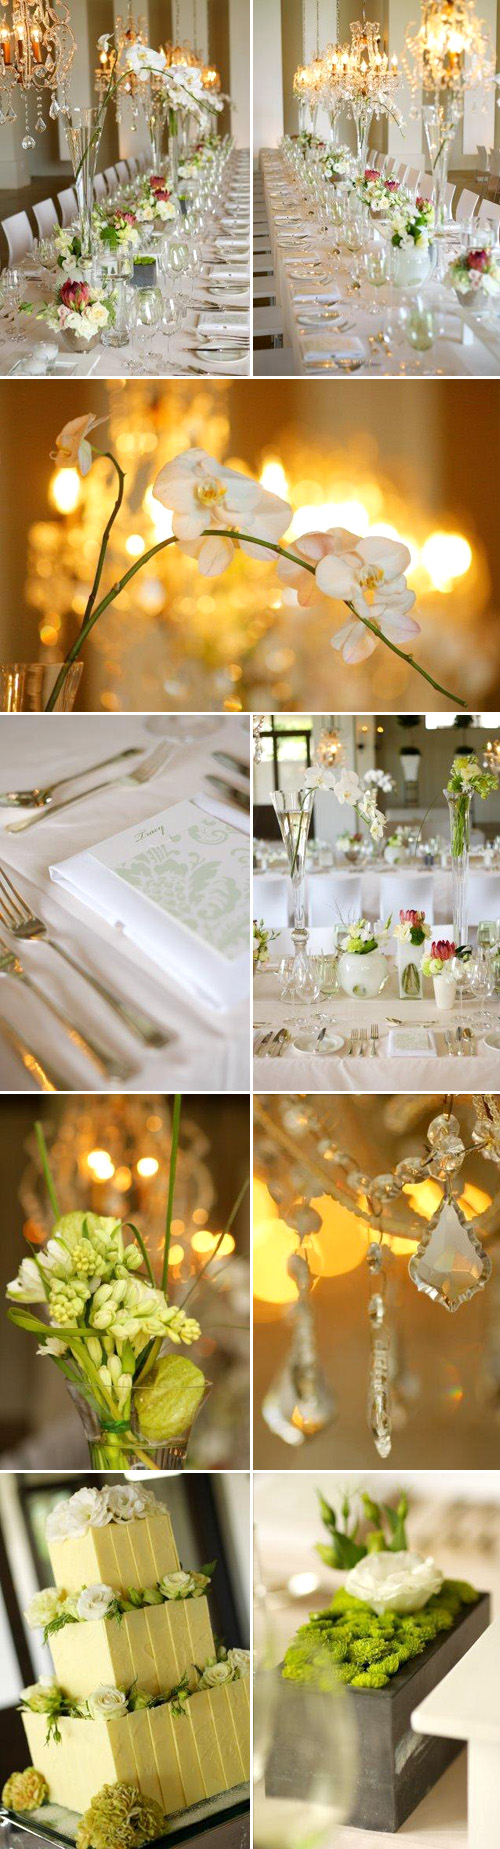 cape town south africa modern real wedding, sage green and white wedding color palette, designed by wedding concepts and photographed by jean-pierre uys photography